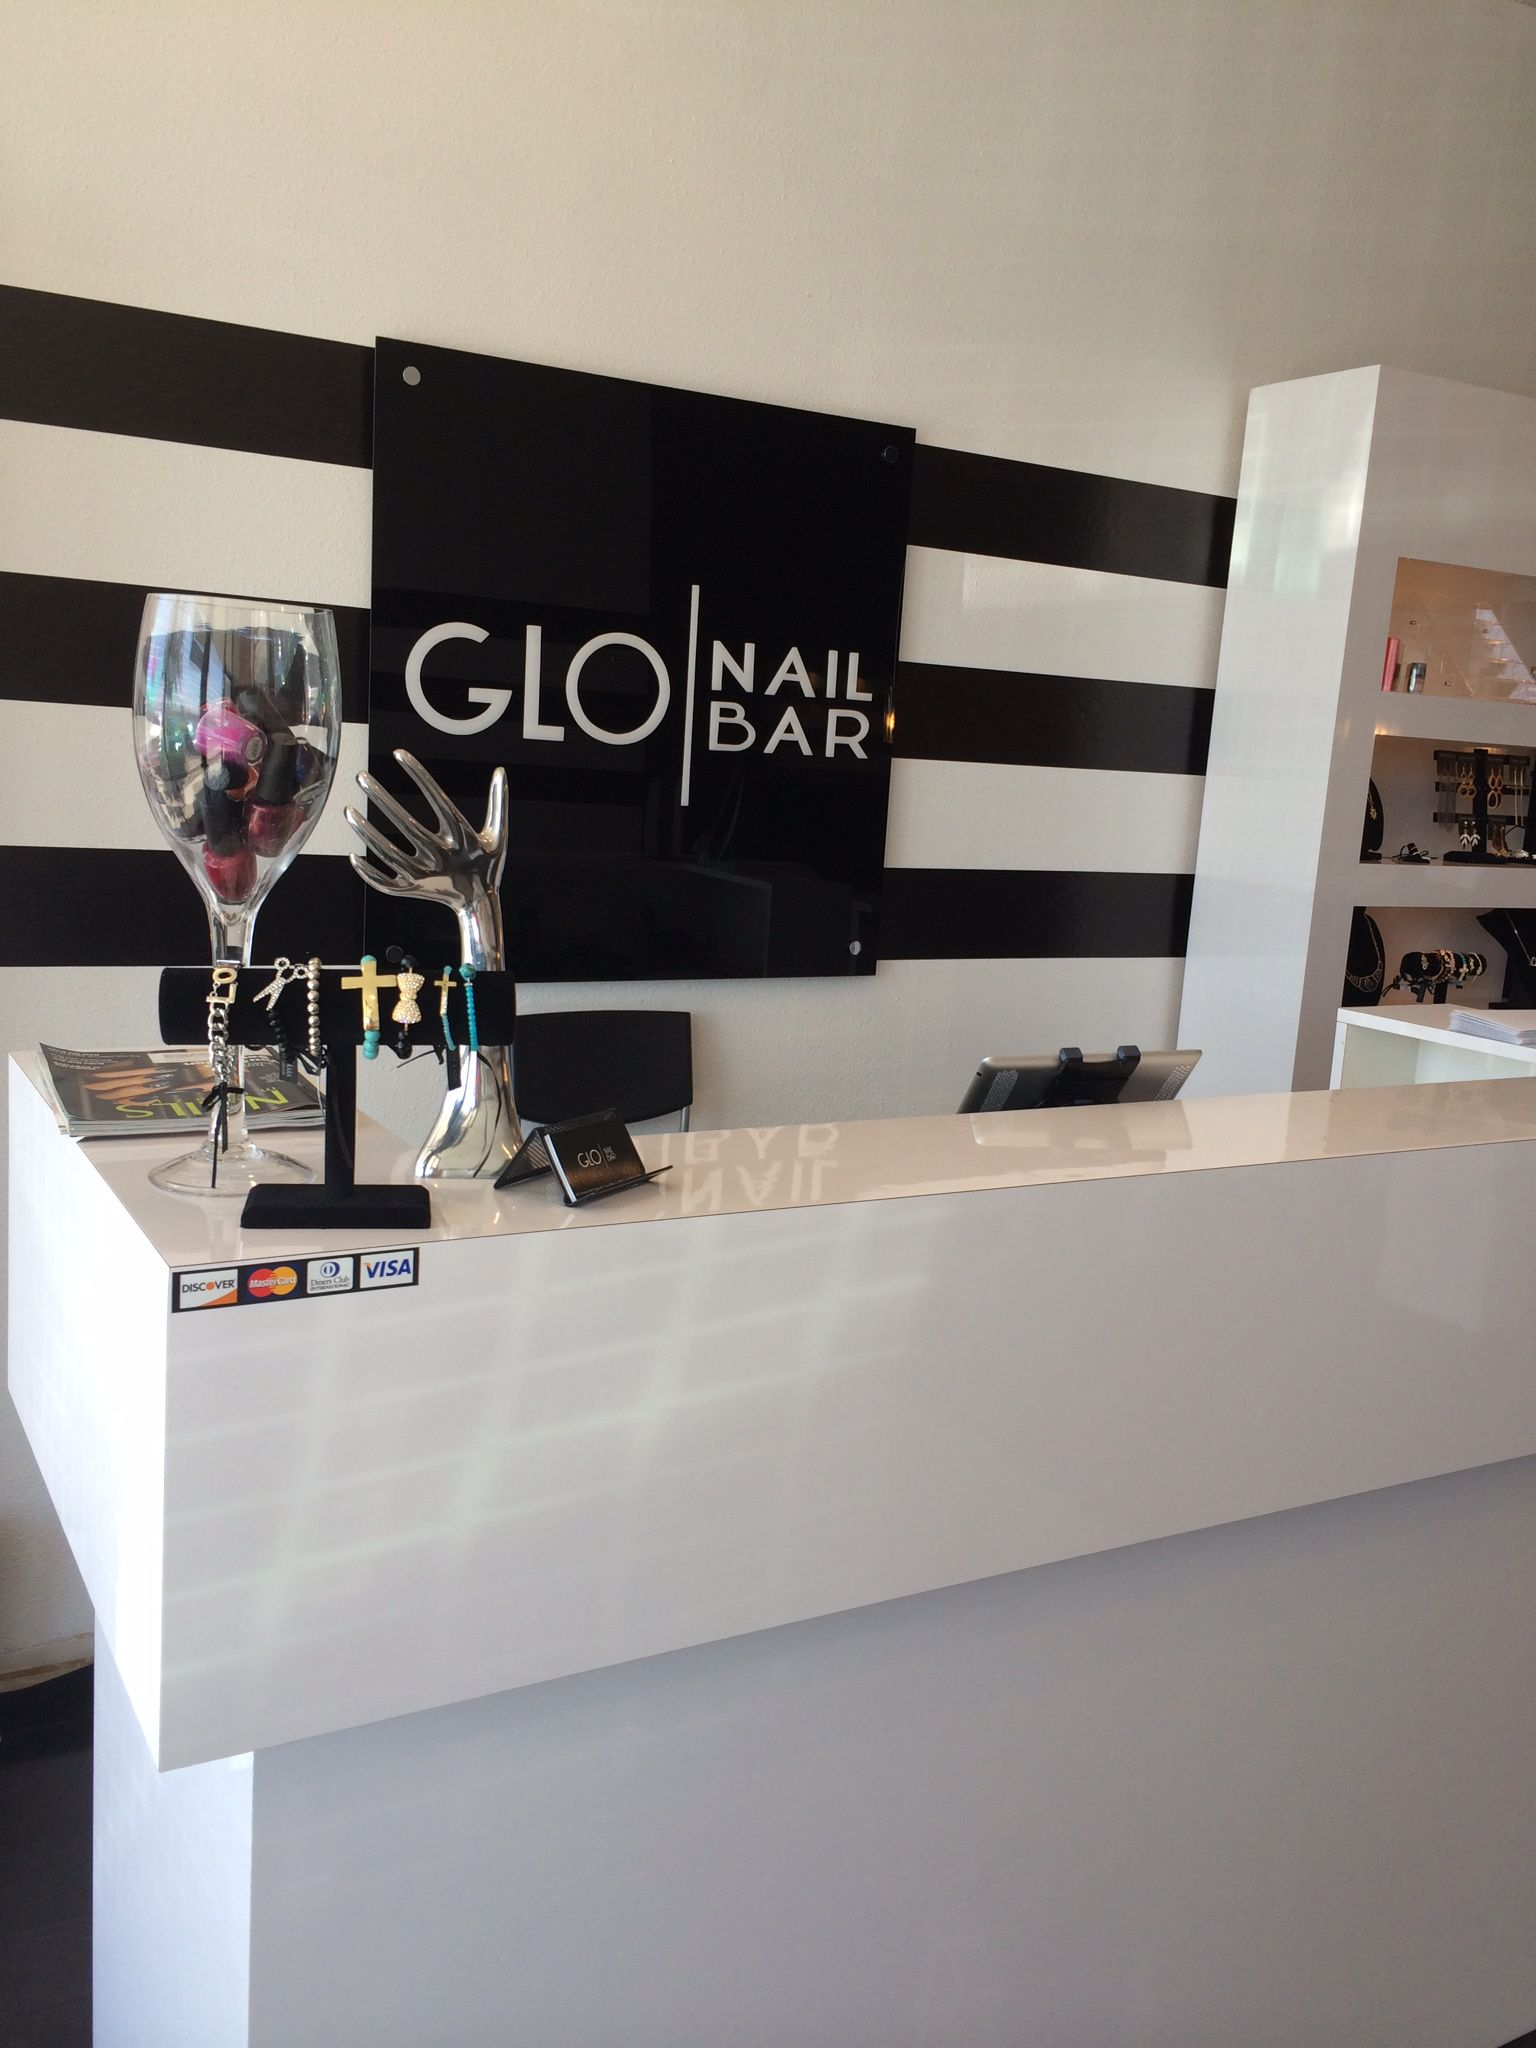 Nombres Para Salones De Belleza Cool Salons Glo Nail Bar In Costa Mesa Calif Salon